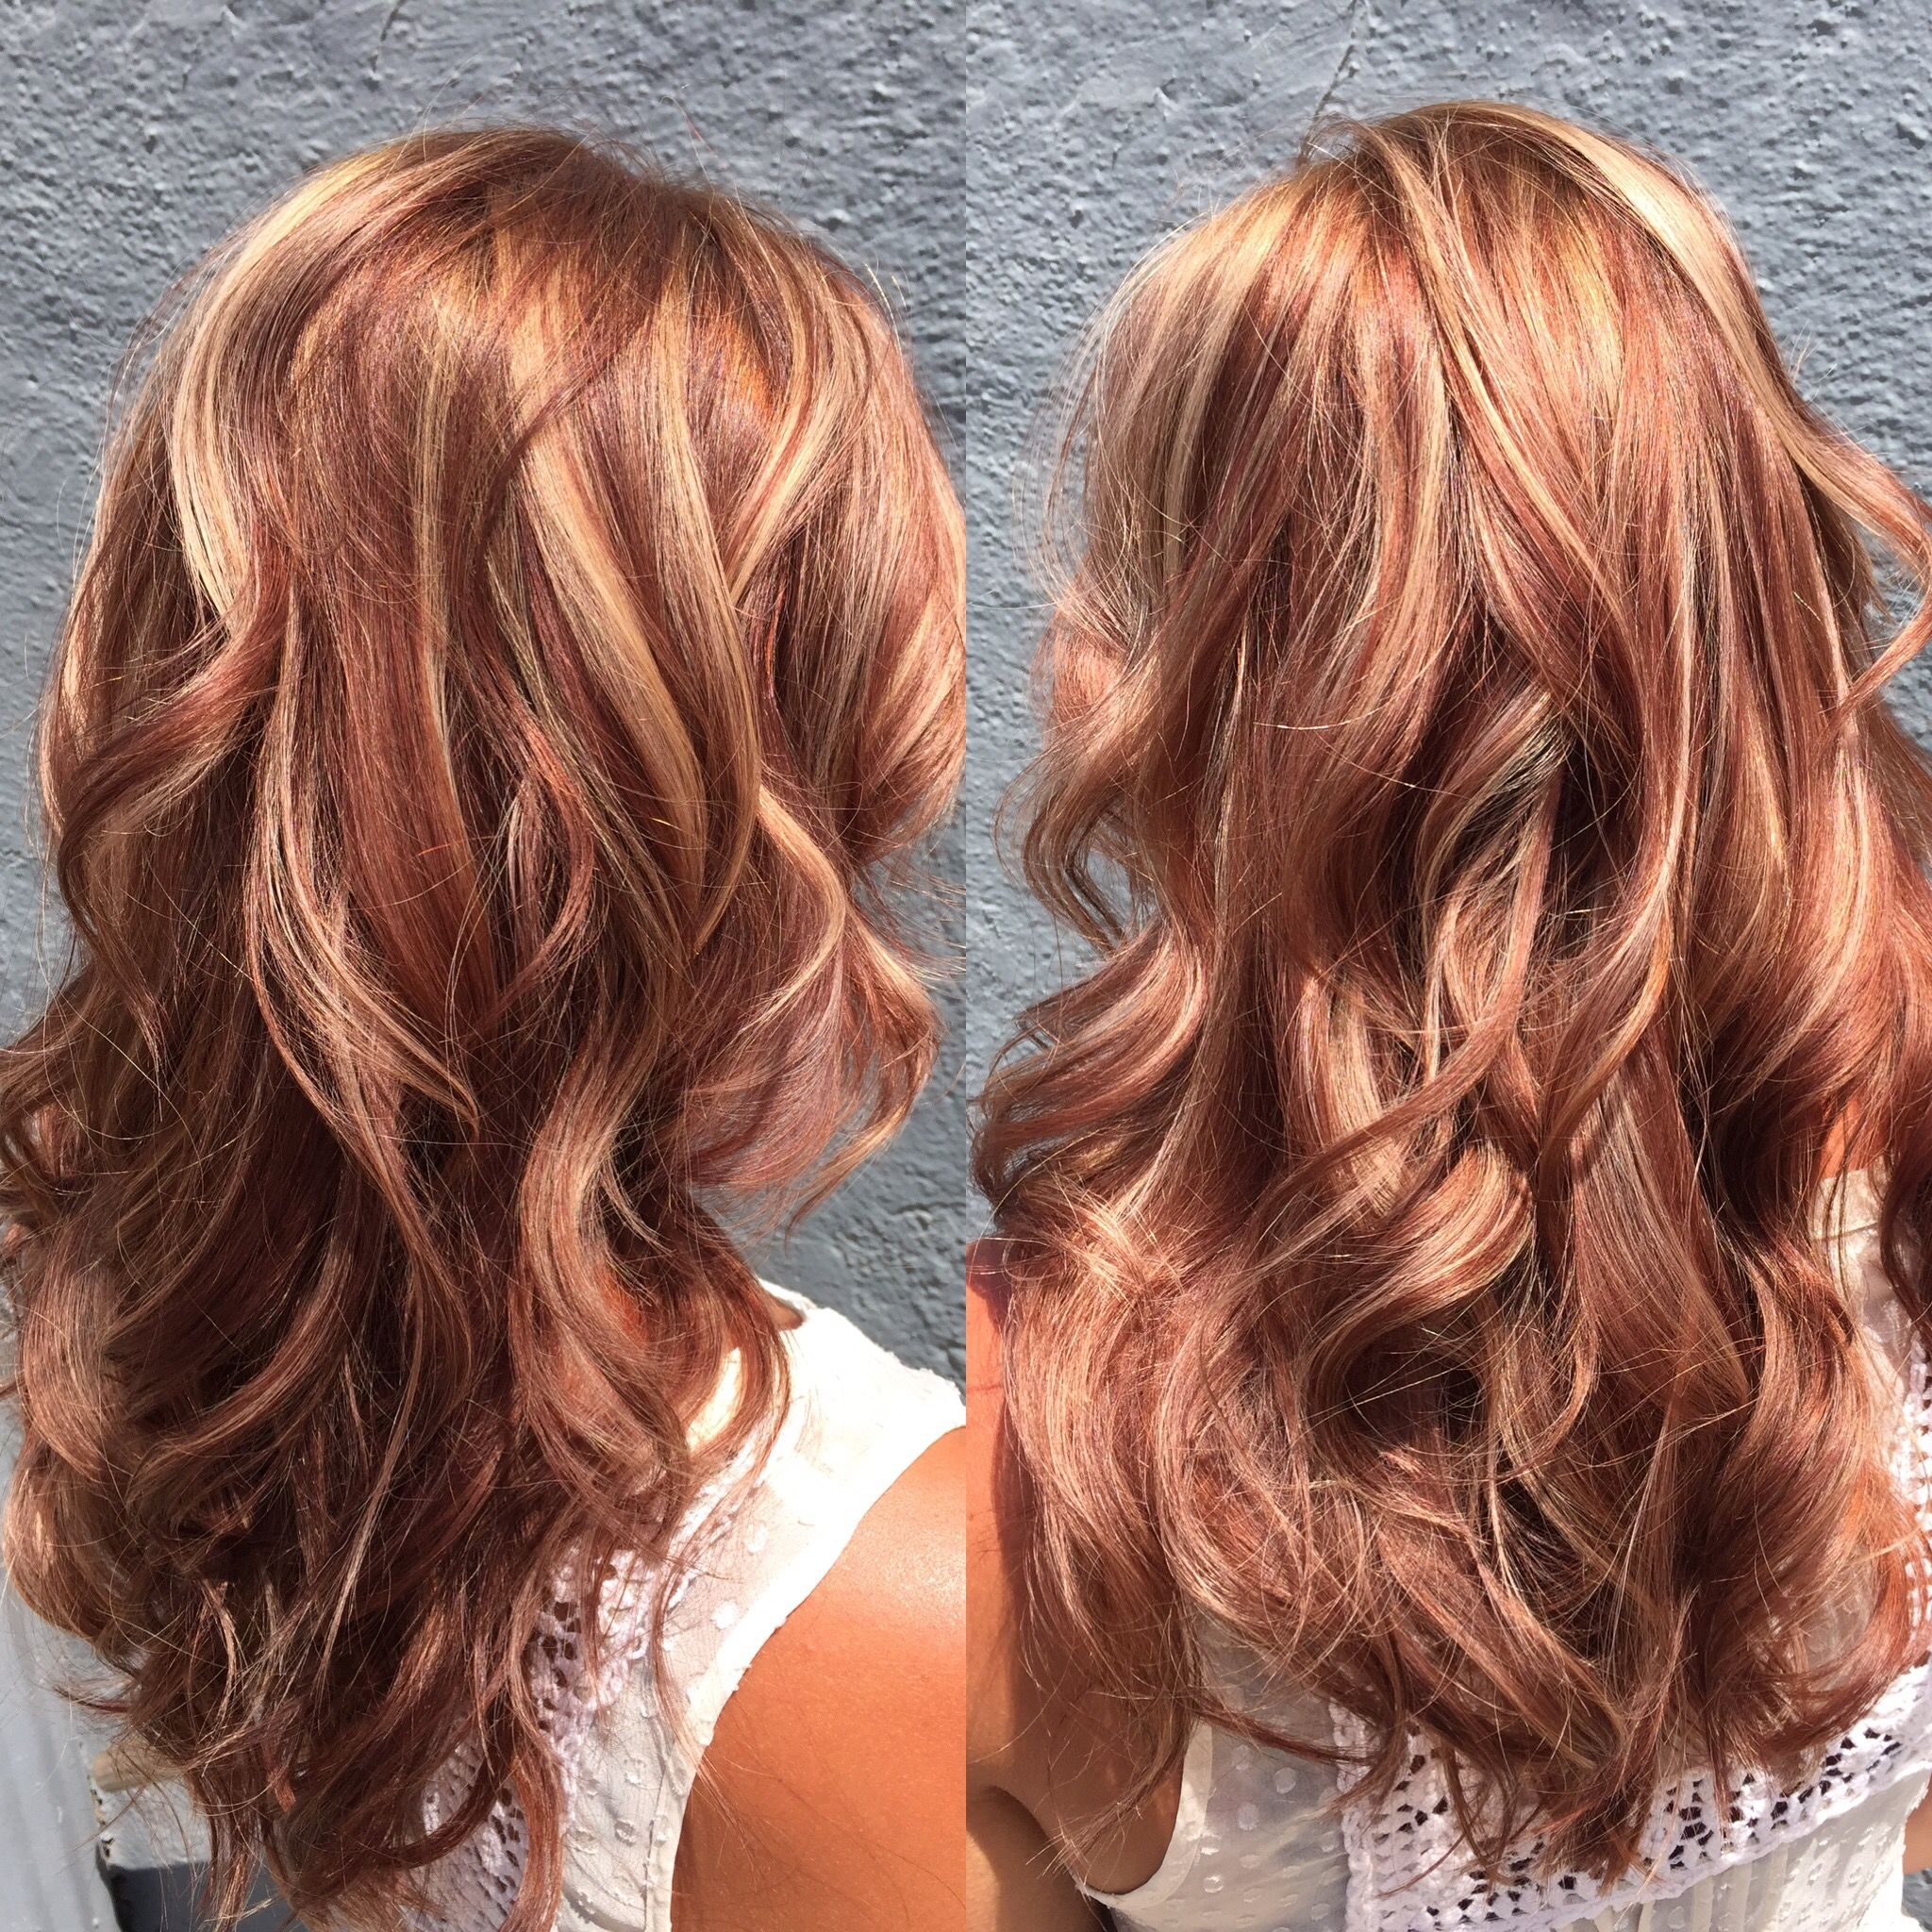 Hair Hilite Lowlite Auburn Red Blonde Waves Long Hair Hair